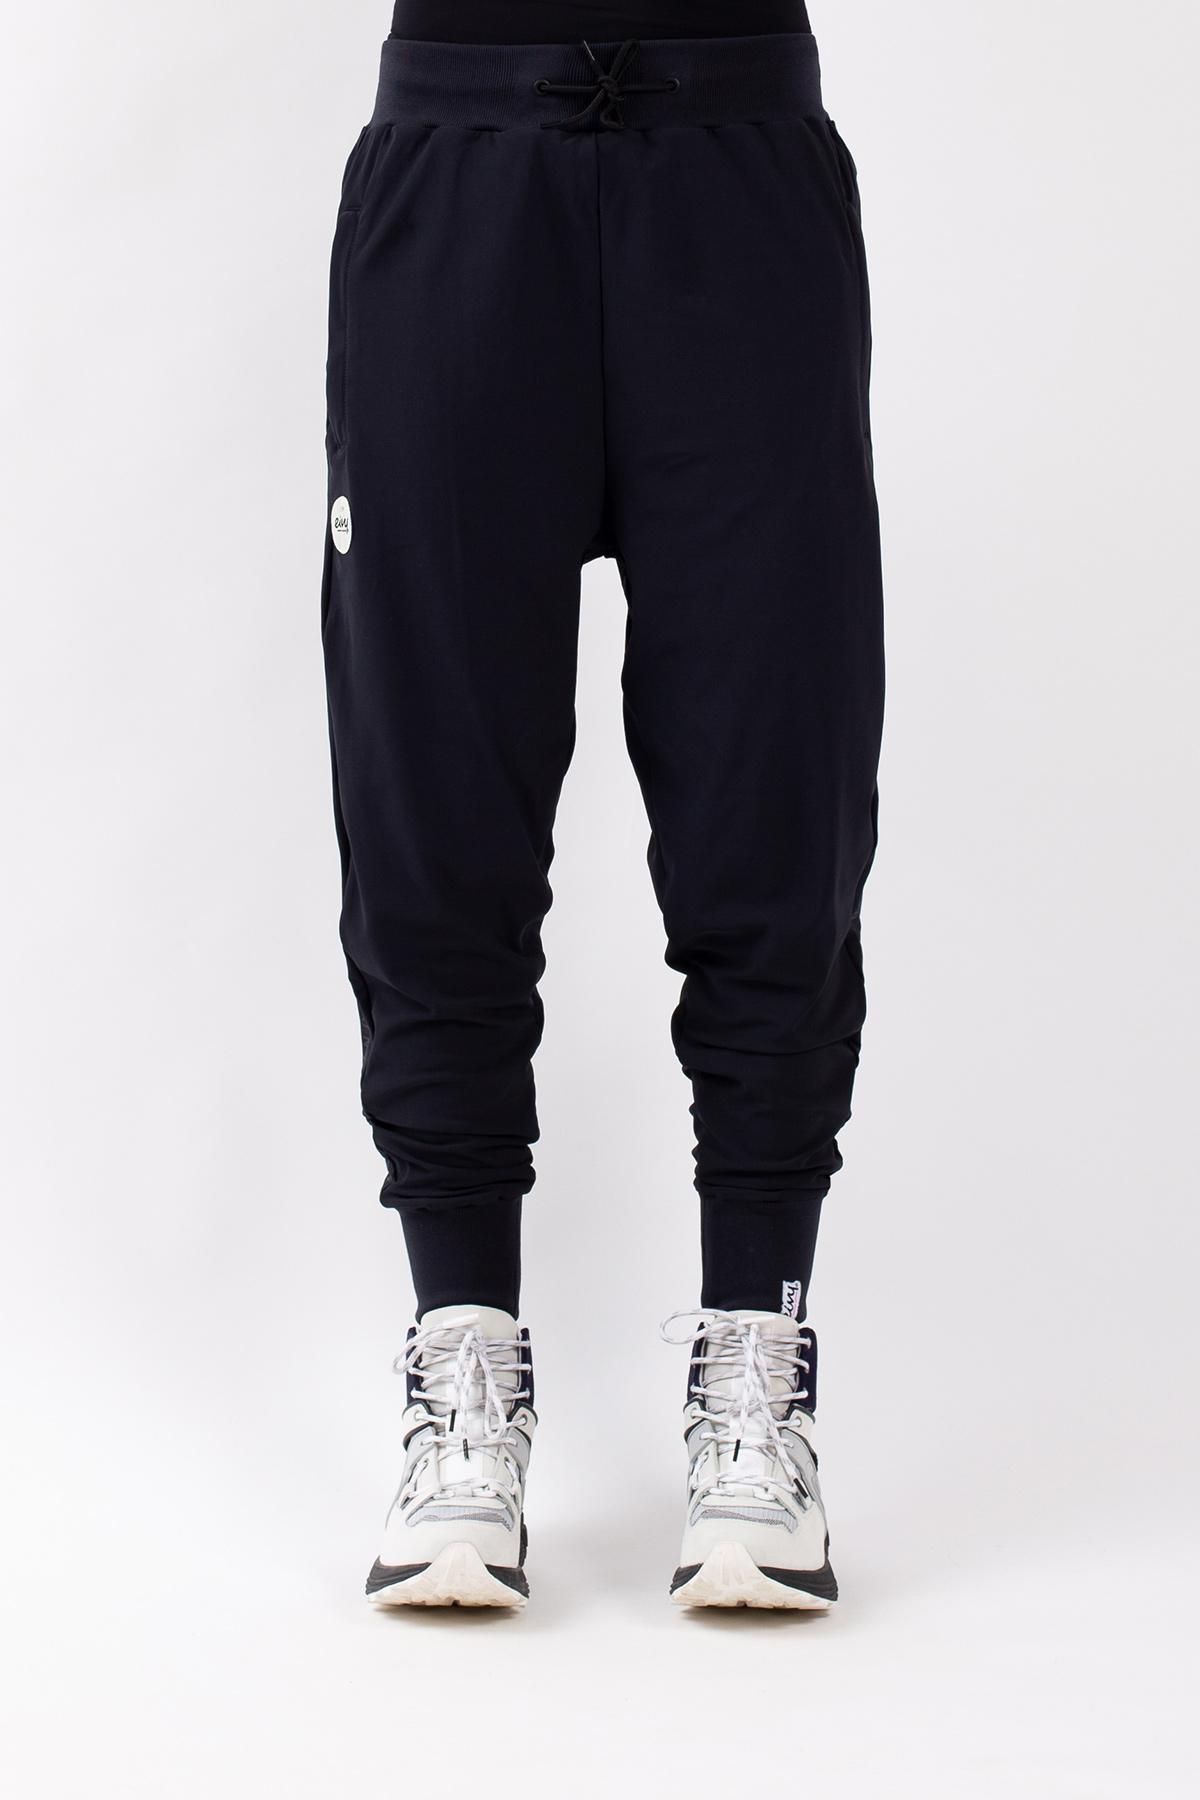 Byxor | Harlem Travel Pants - Black